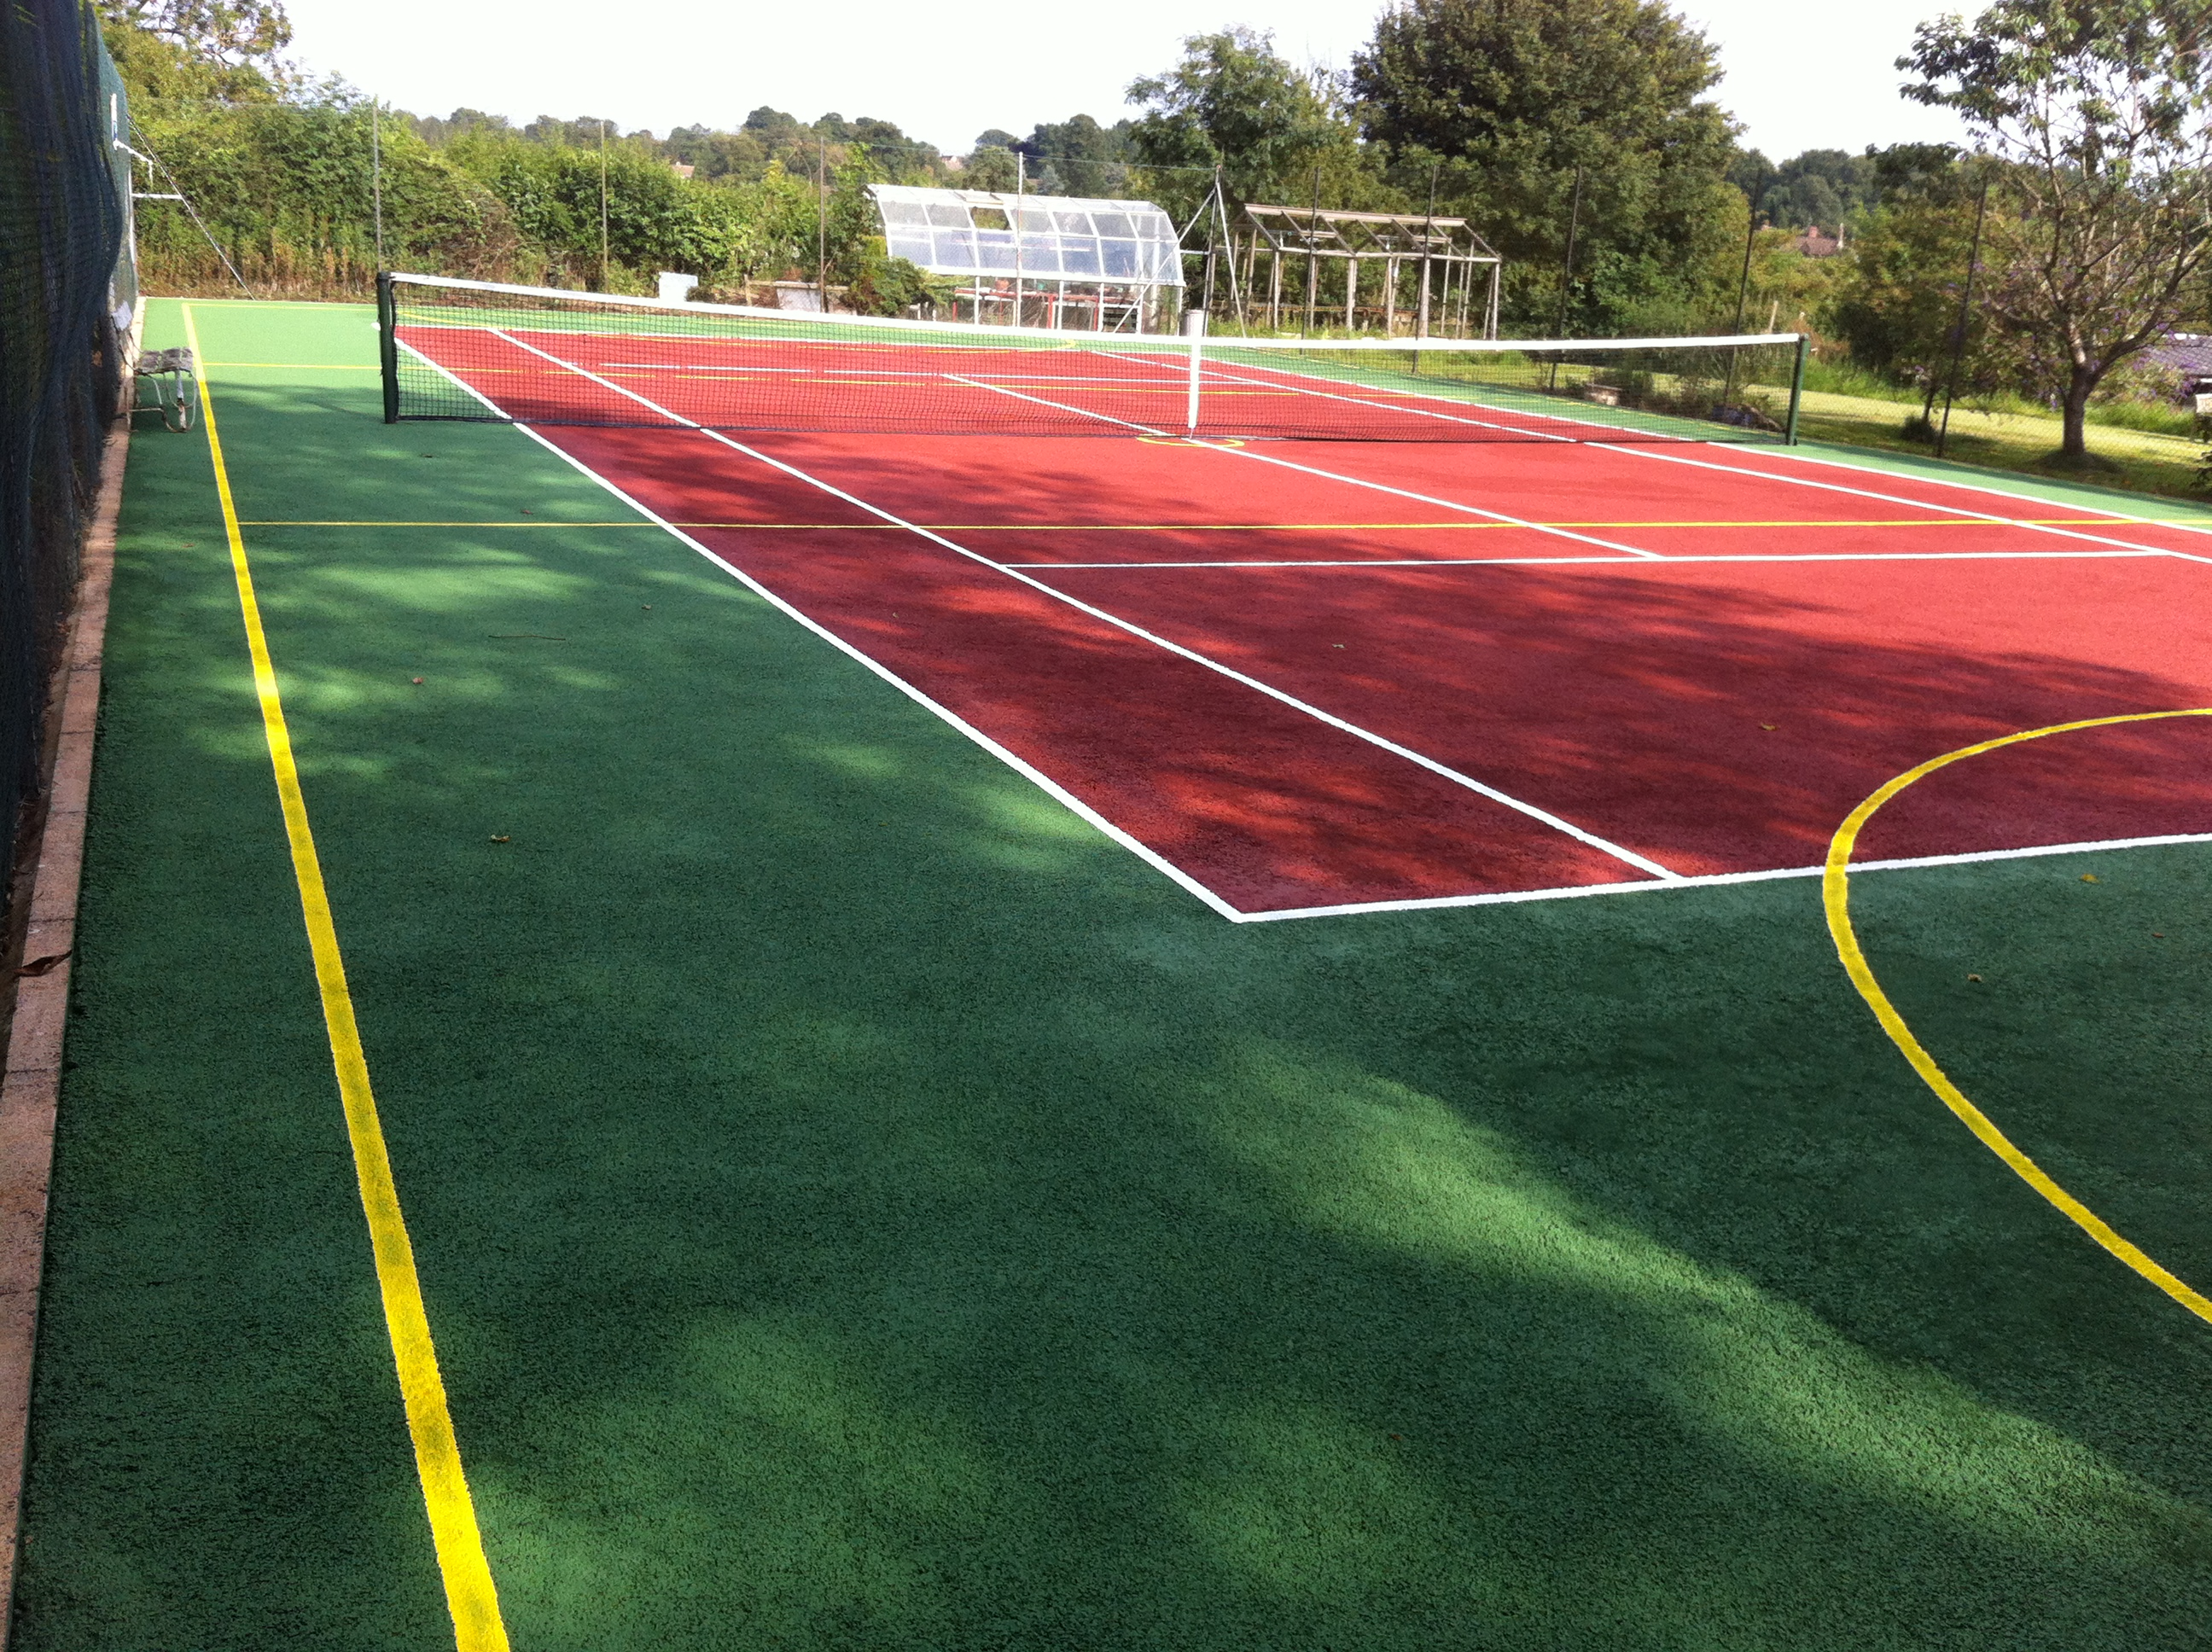 Tennis court dimensions uk tennis courts size for Sport court size